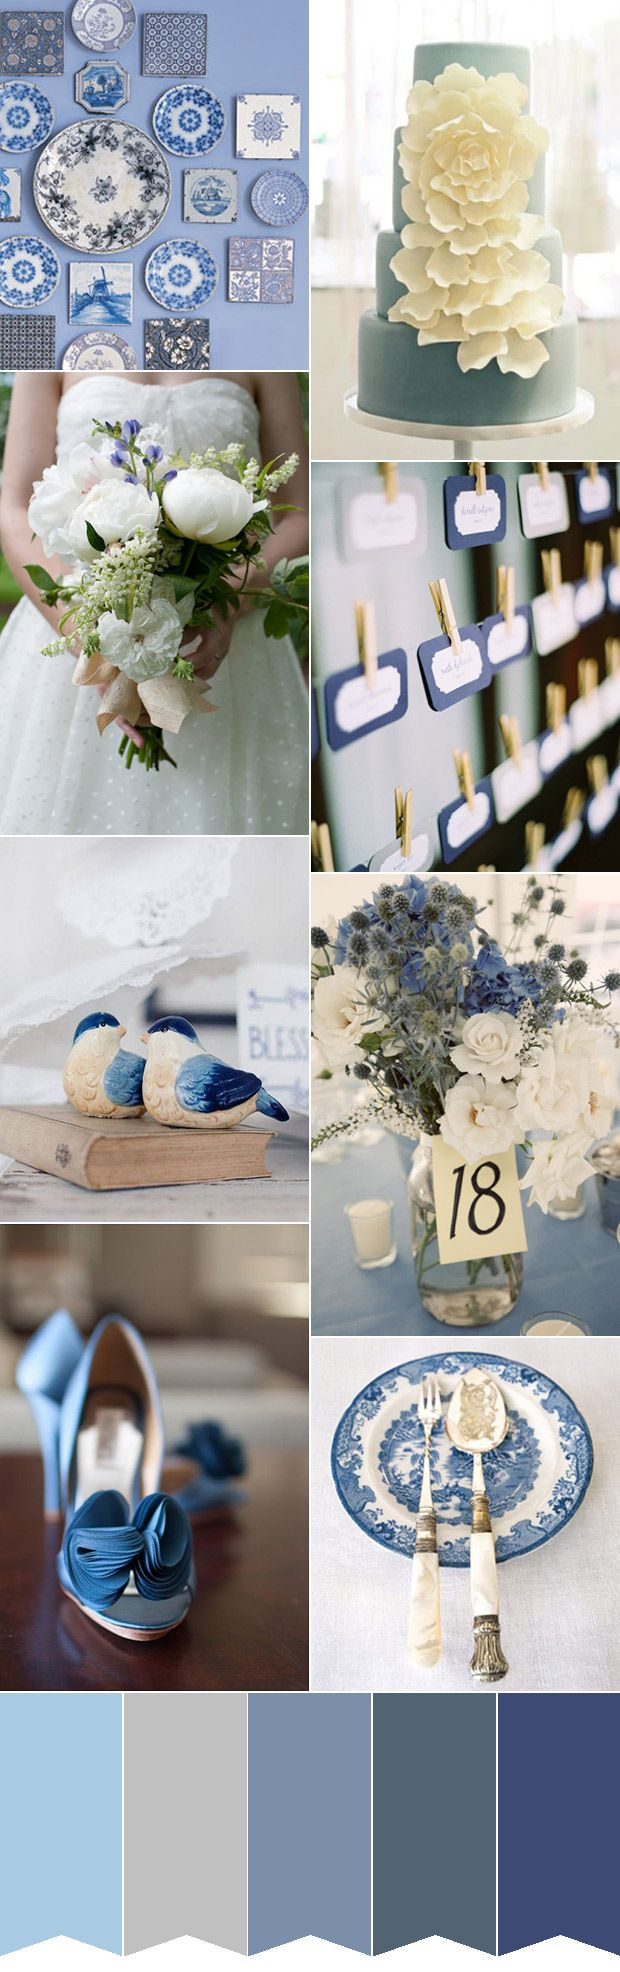 Blue and white wedding decor  A Willow Pattern Wedding Blue and White China Pattern Blue u White